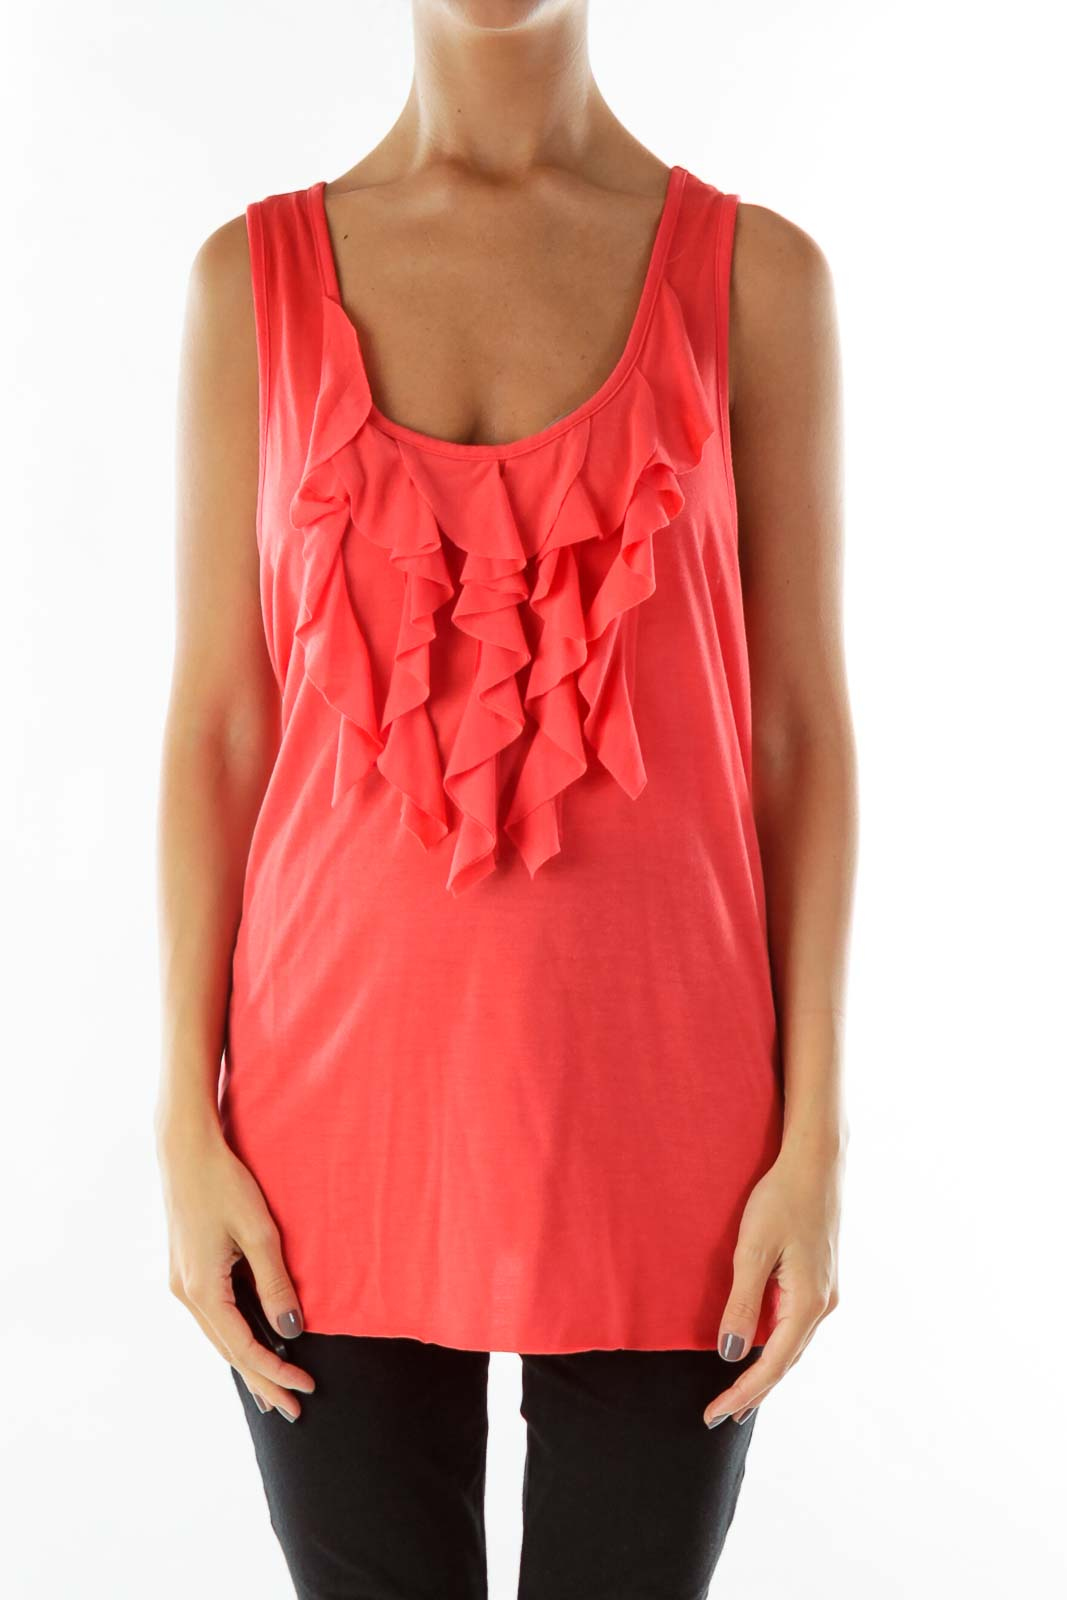 Red Ruffled Tank Top